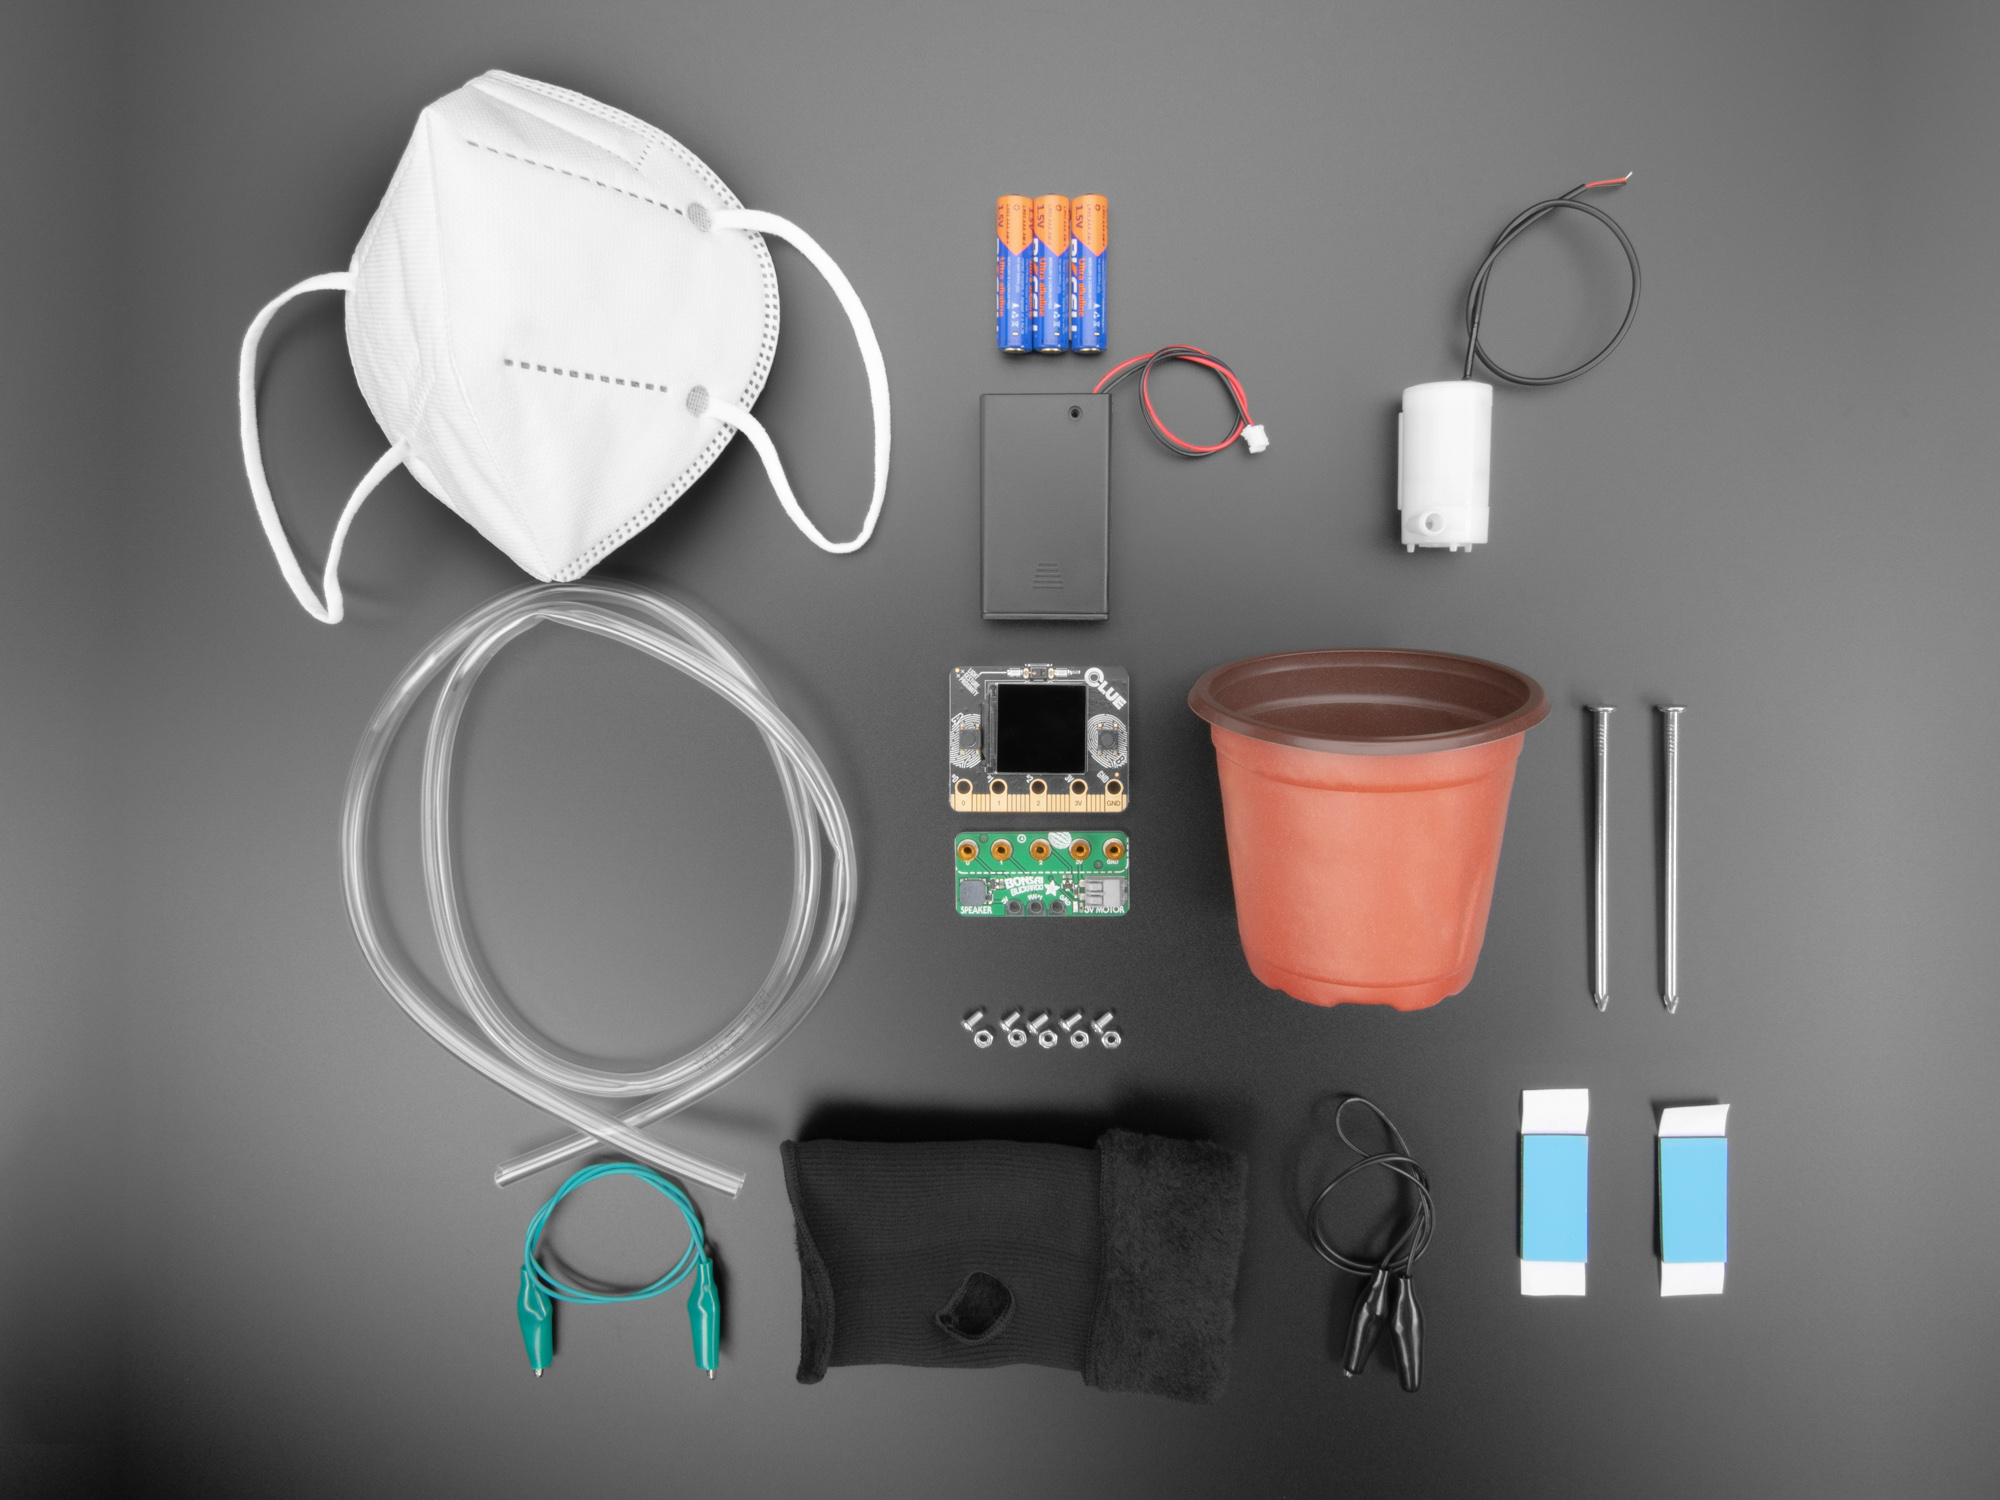 sensors_AdaBox015_kit.jpg